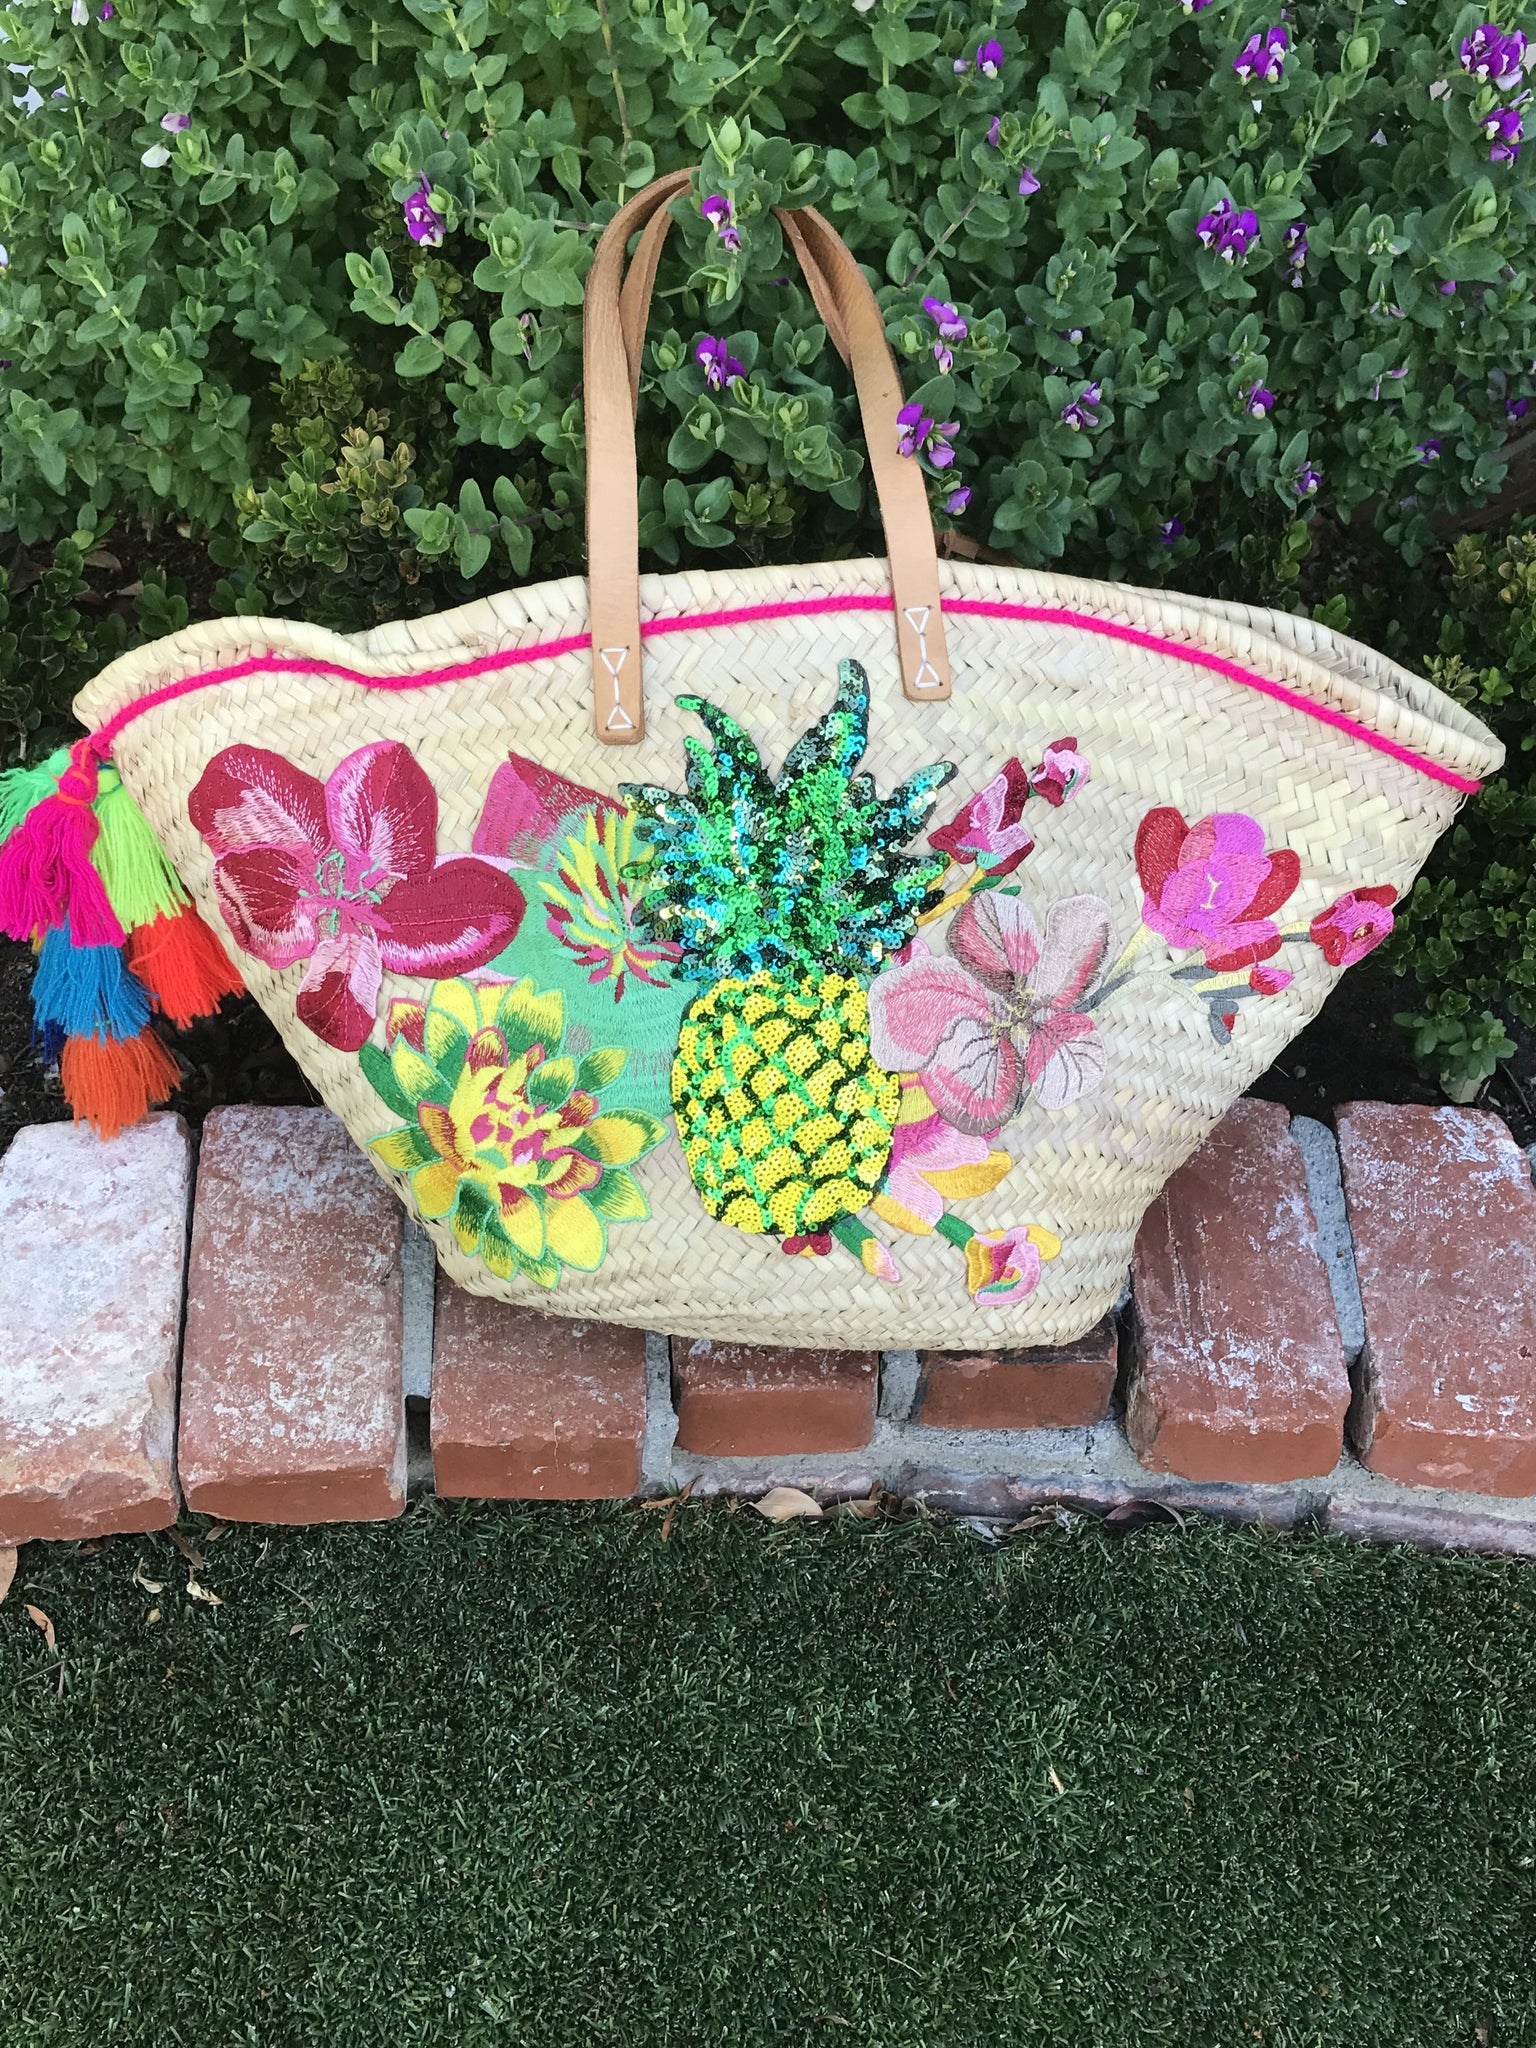 The Pina Pineapple or Parrot Beach Basket